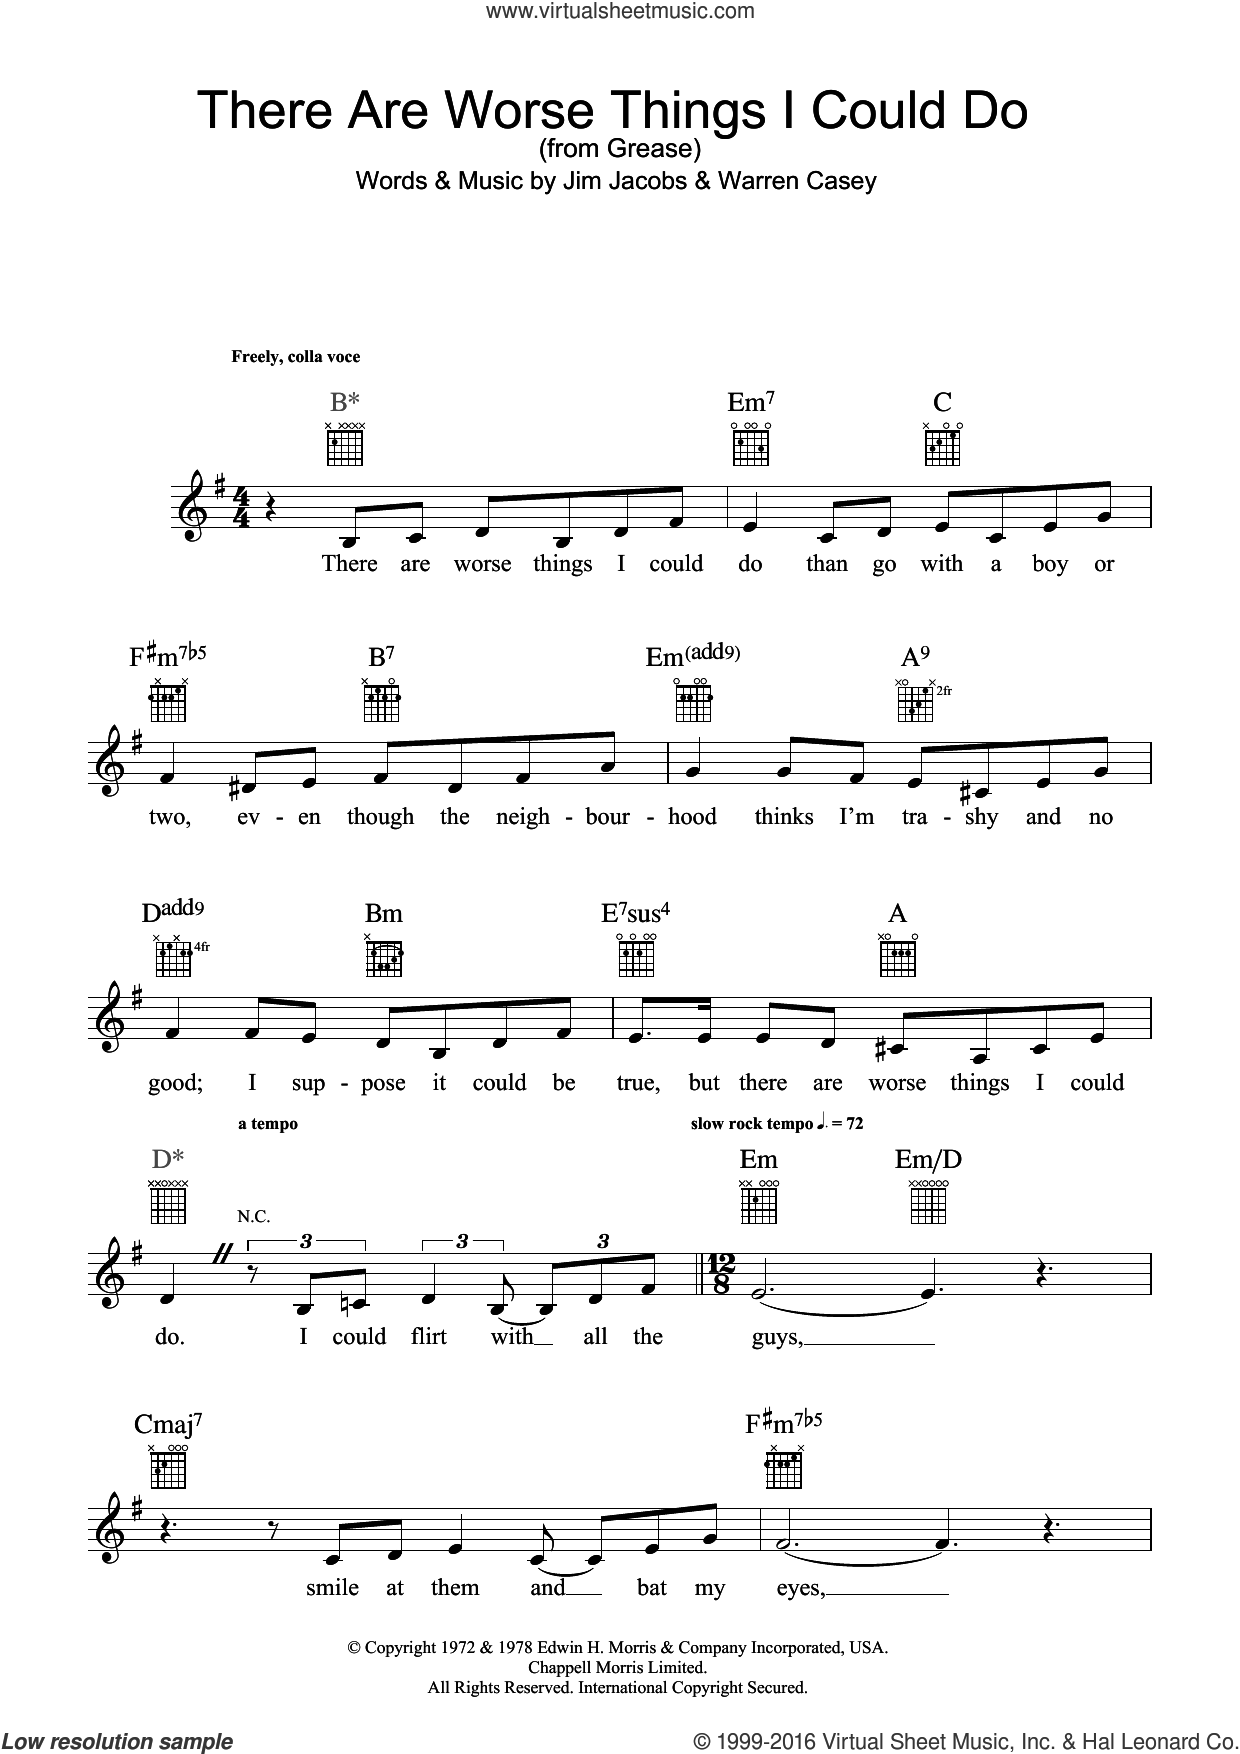 There Are Worse Things I Could Do (from Grease) sheet music for voice and other instruments (fake book) by Stockard Channing, Jim Jacobs and Warren Casey, intermediate skill level